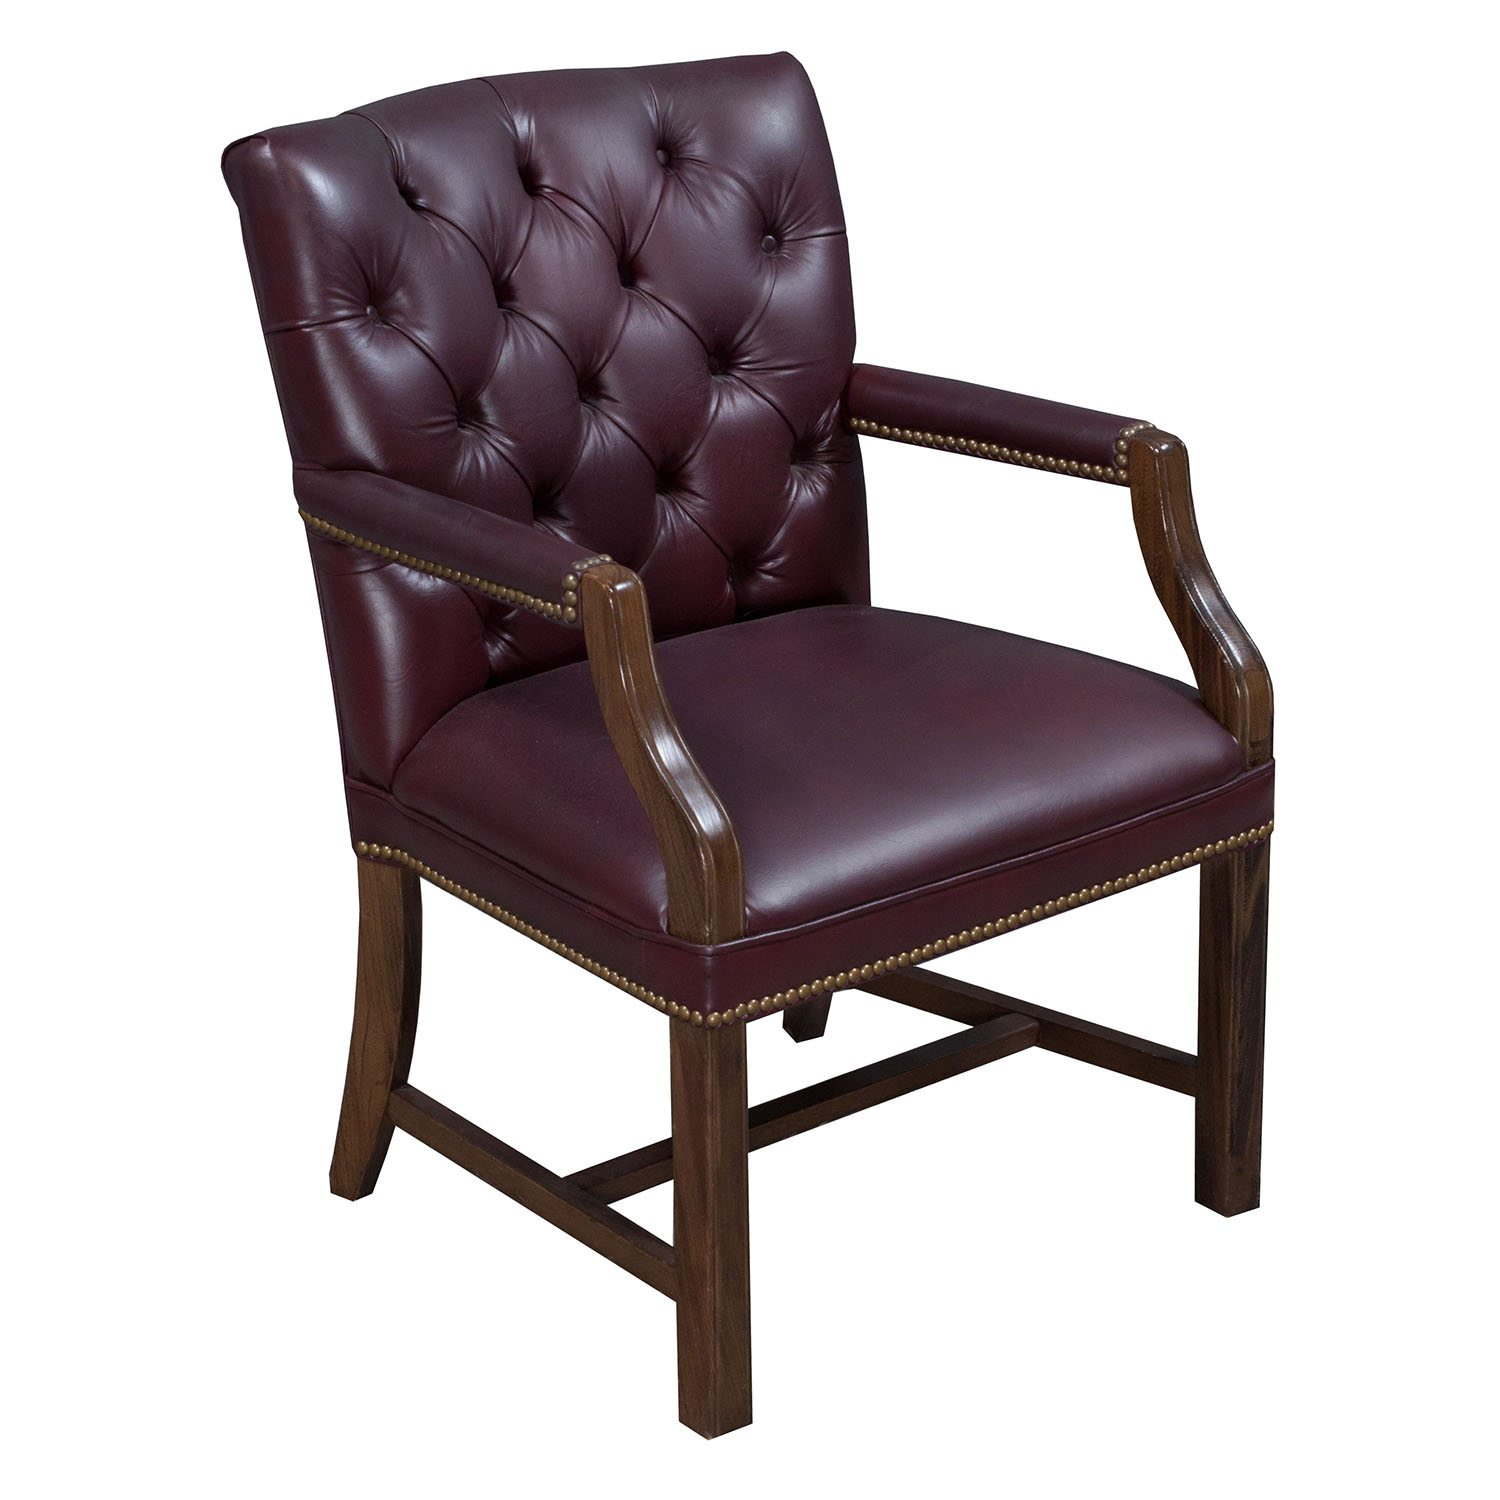 Tufted Leather Chair Traditional Walnut Tufted Leather Side Chair Burgundy